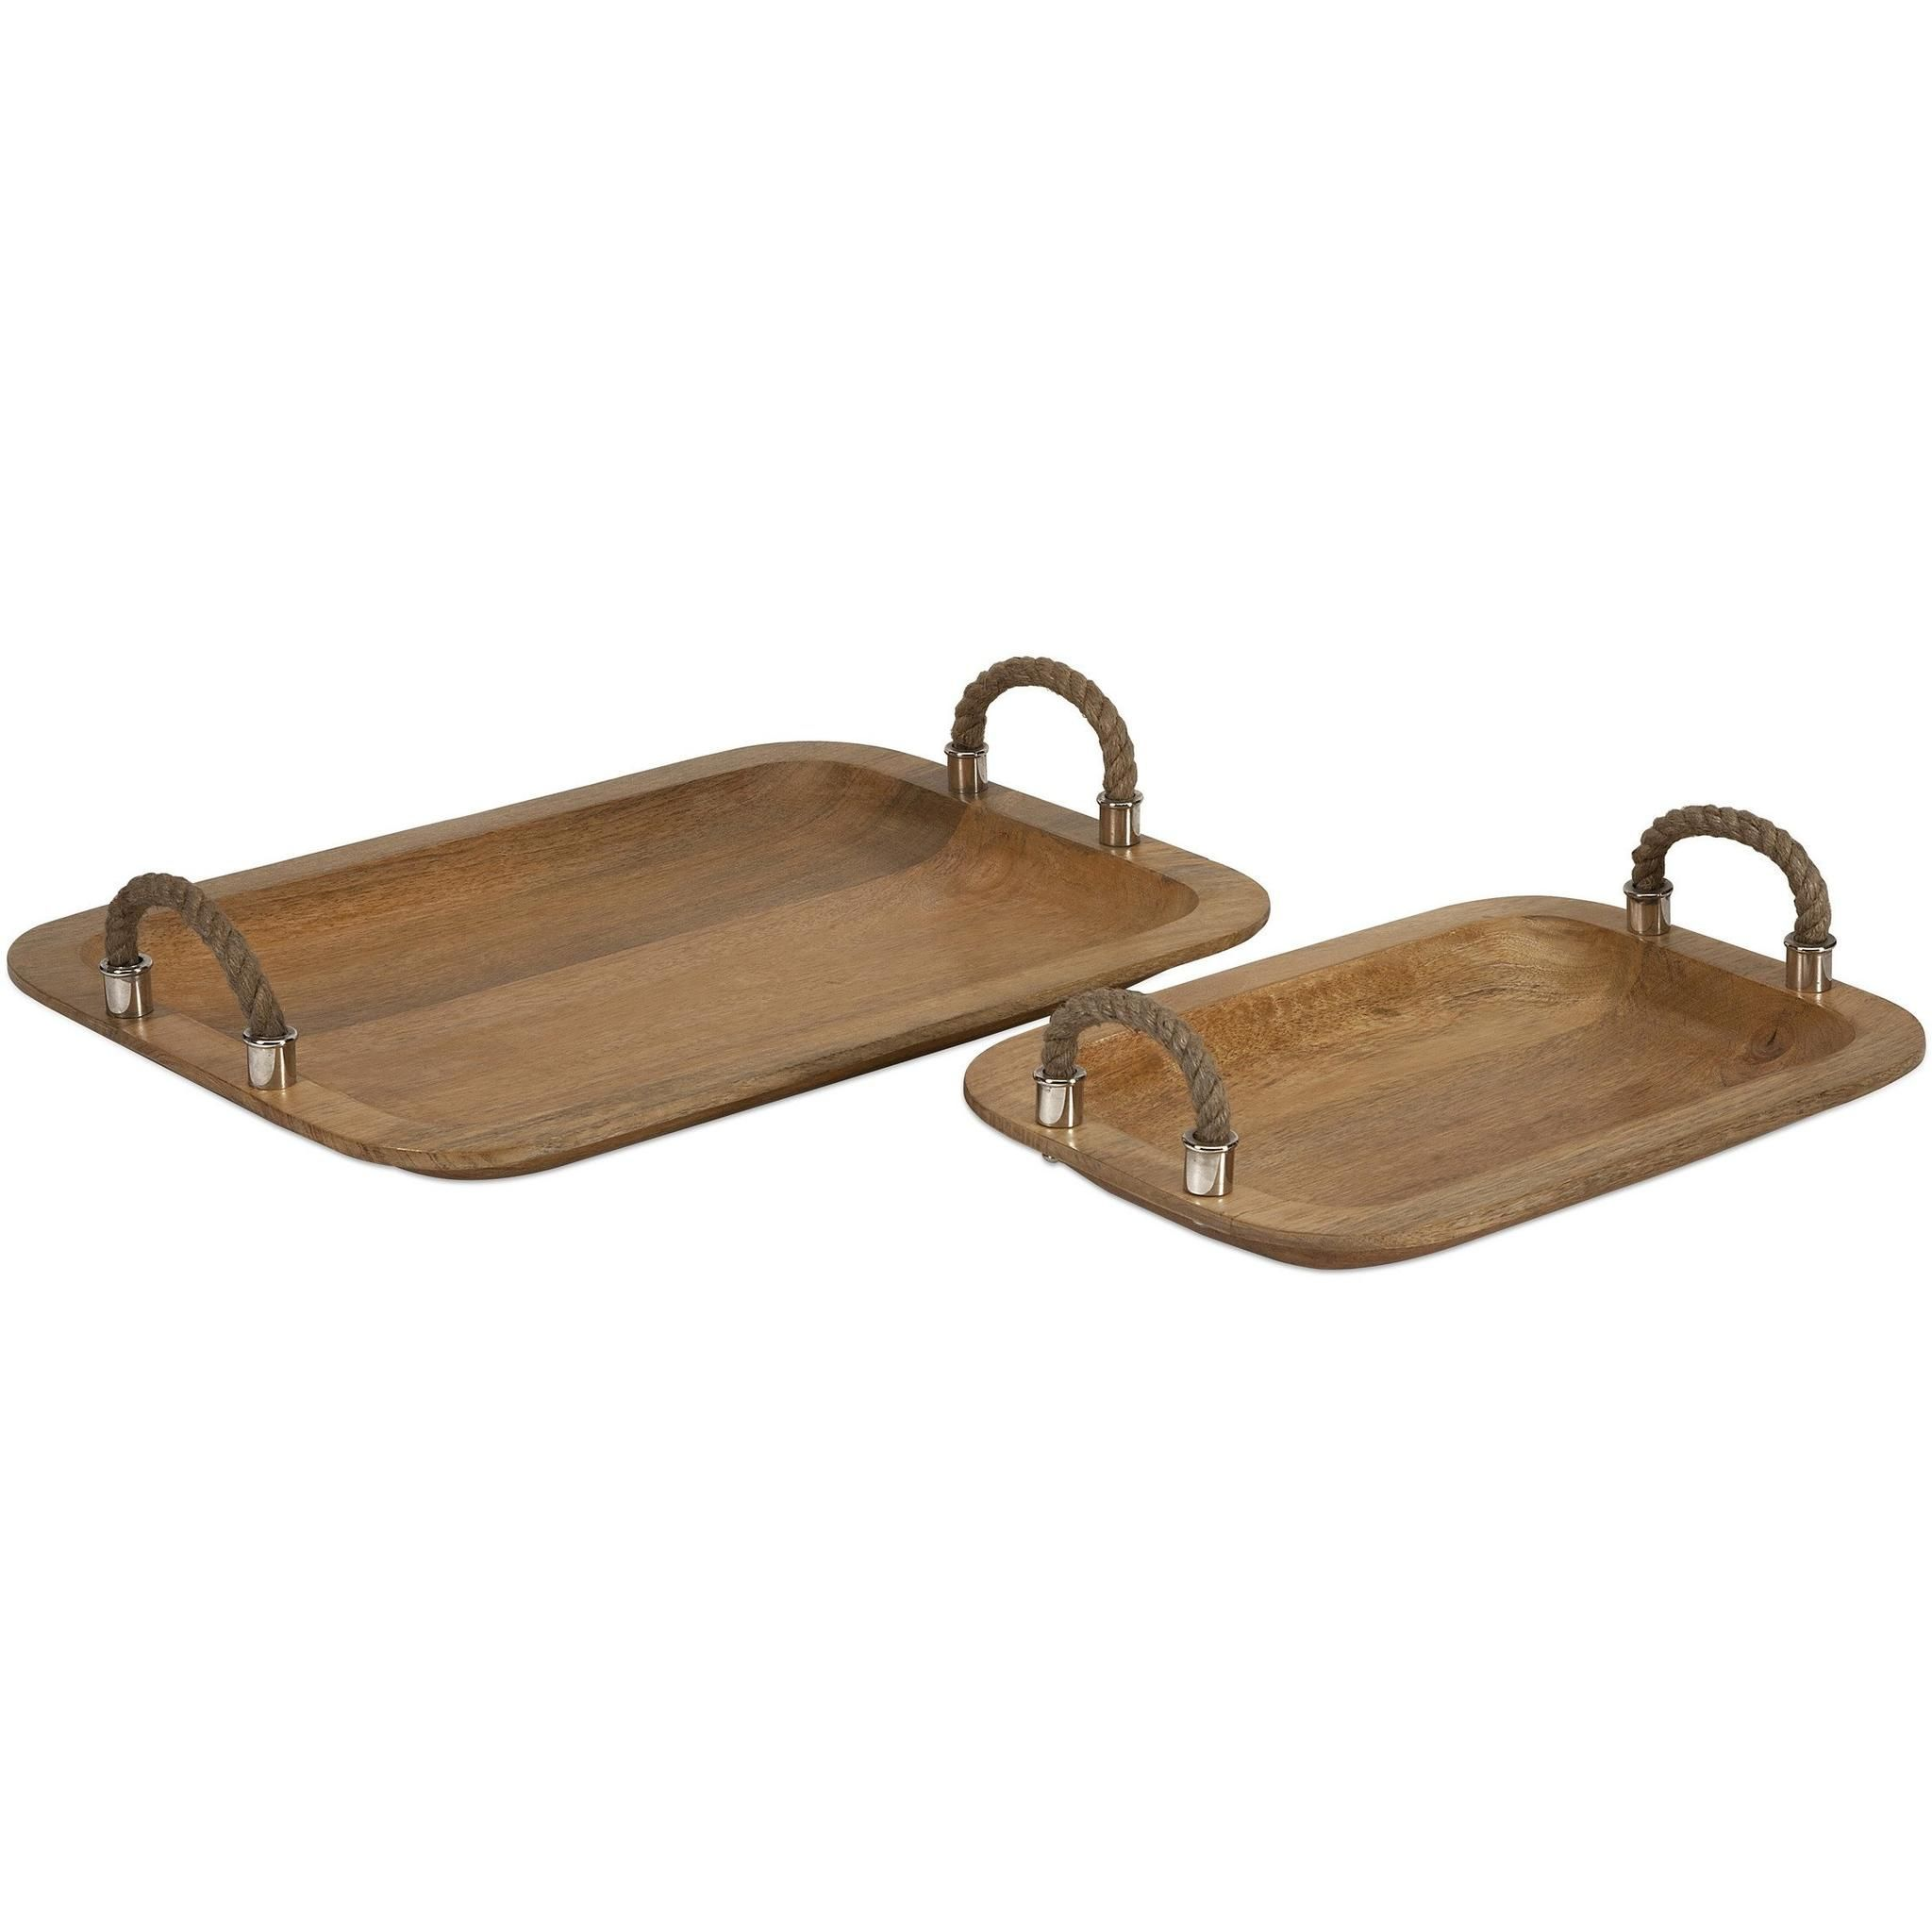 Wooden Trays To Decorate Glamorous Tabari Wood Trays With Jute Handle  Set Of 2  Products Design Inspiration